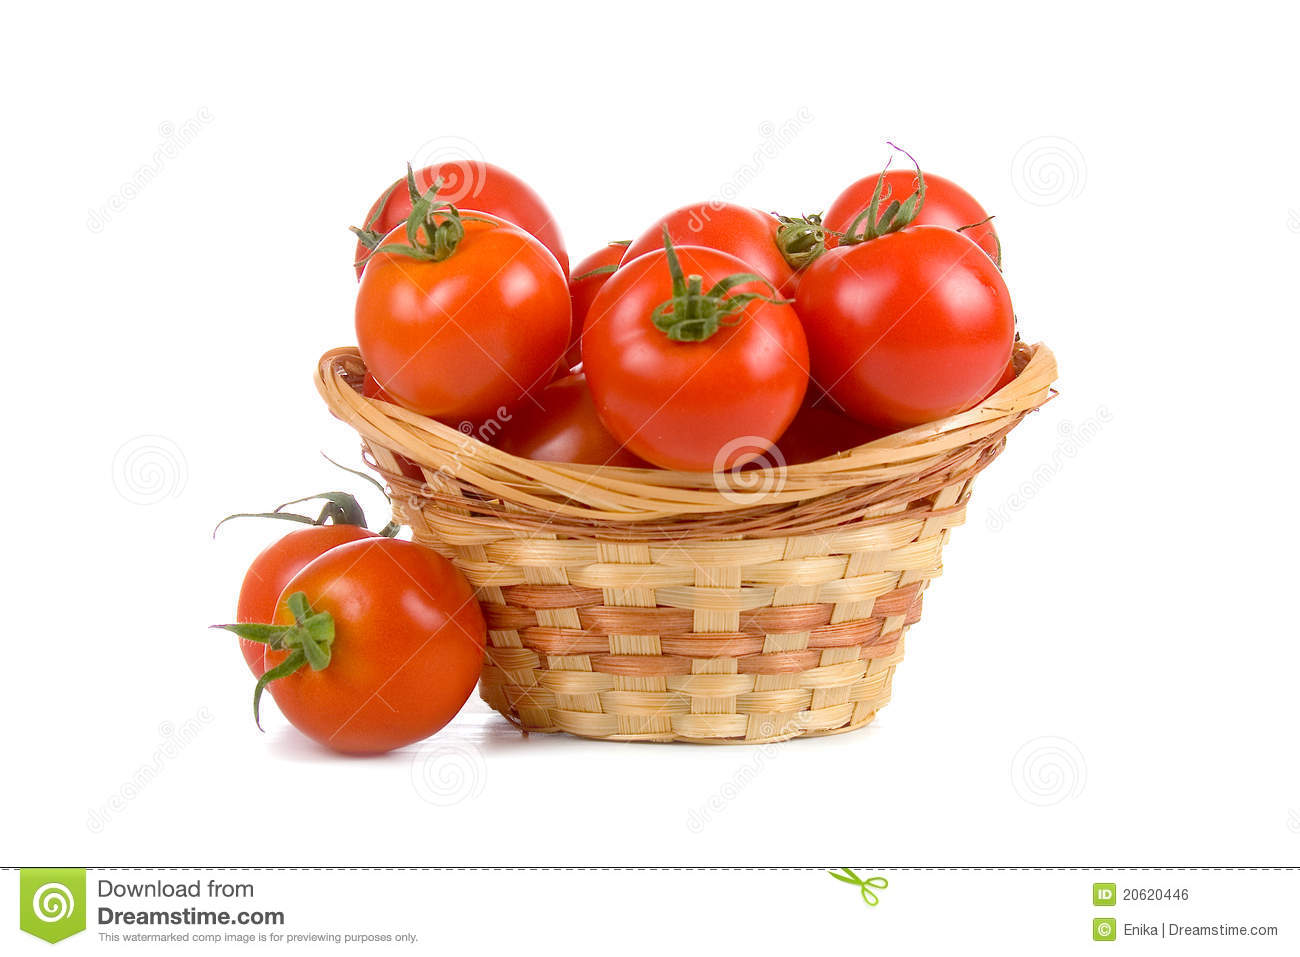 how to tell if a tomato is ripe